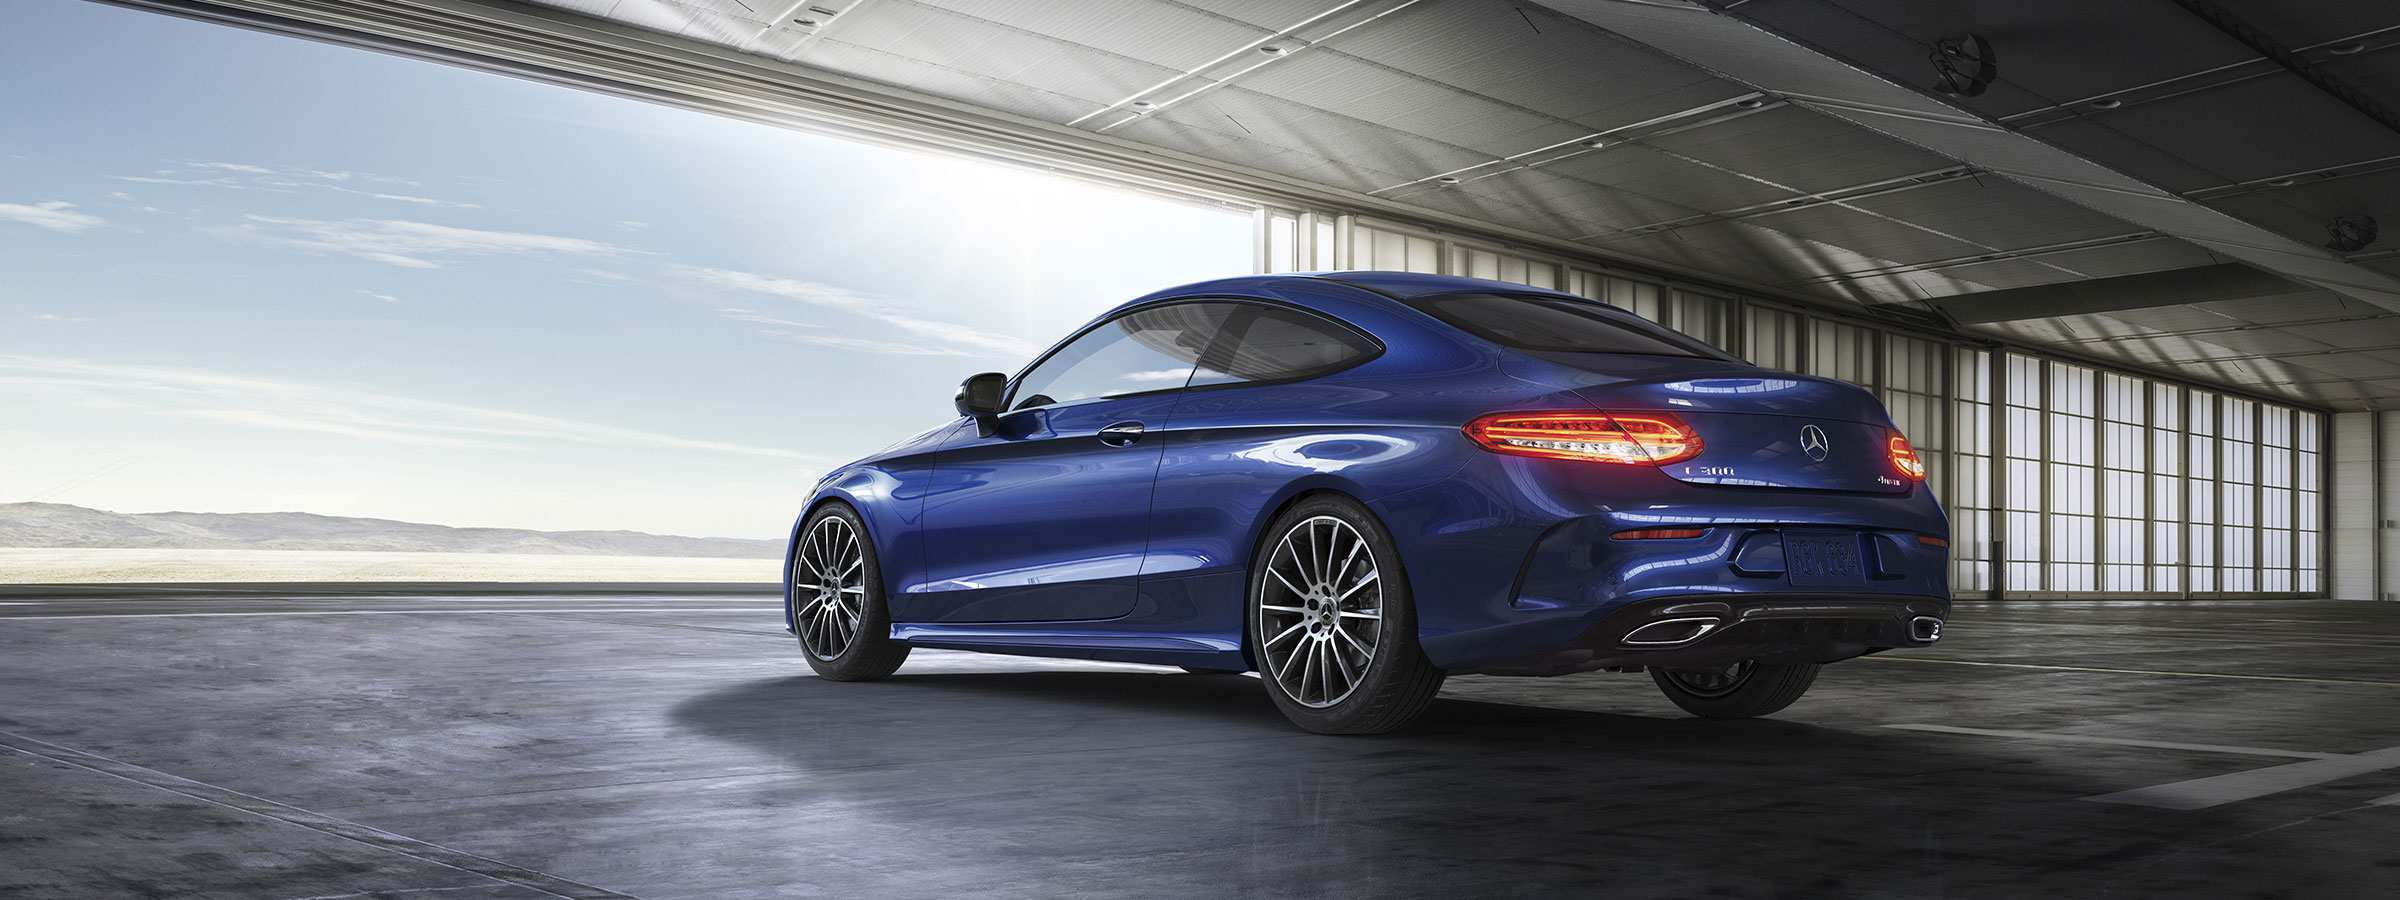 34 All New Mercedes 2019 Coupe Wallpaper for Mercedes 2019 Coupe